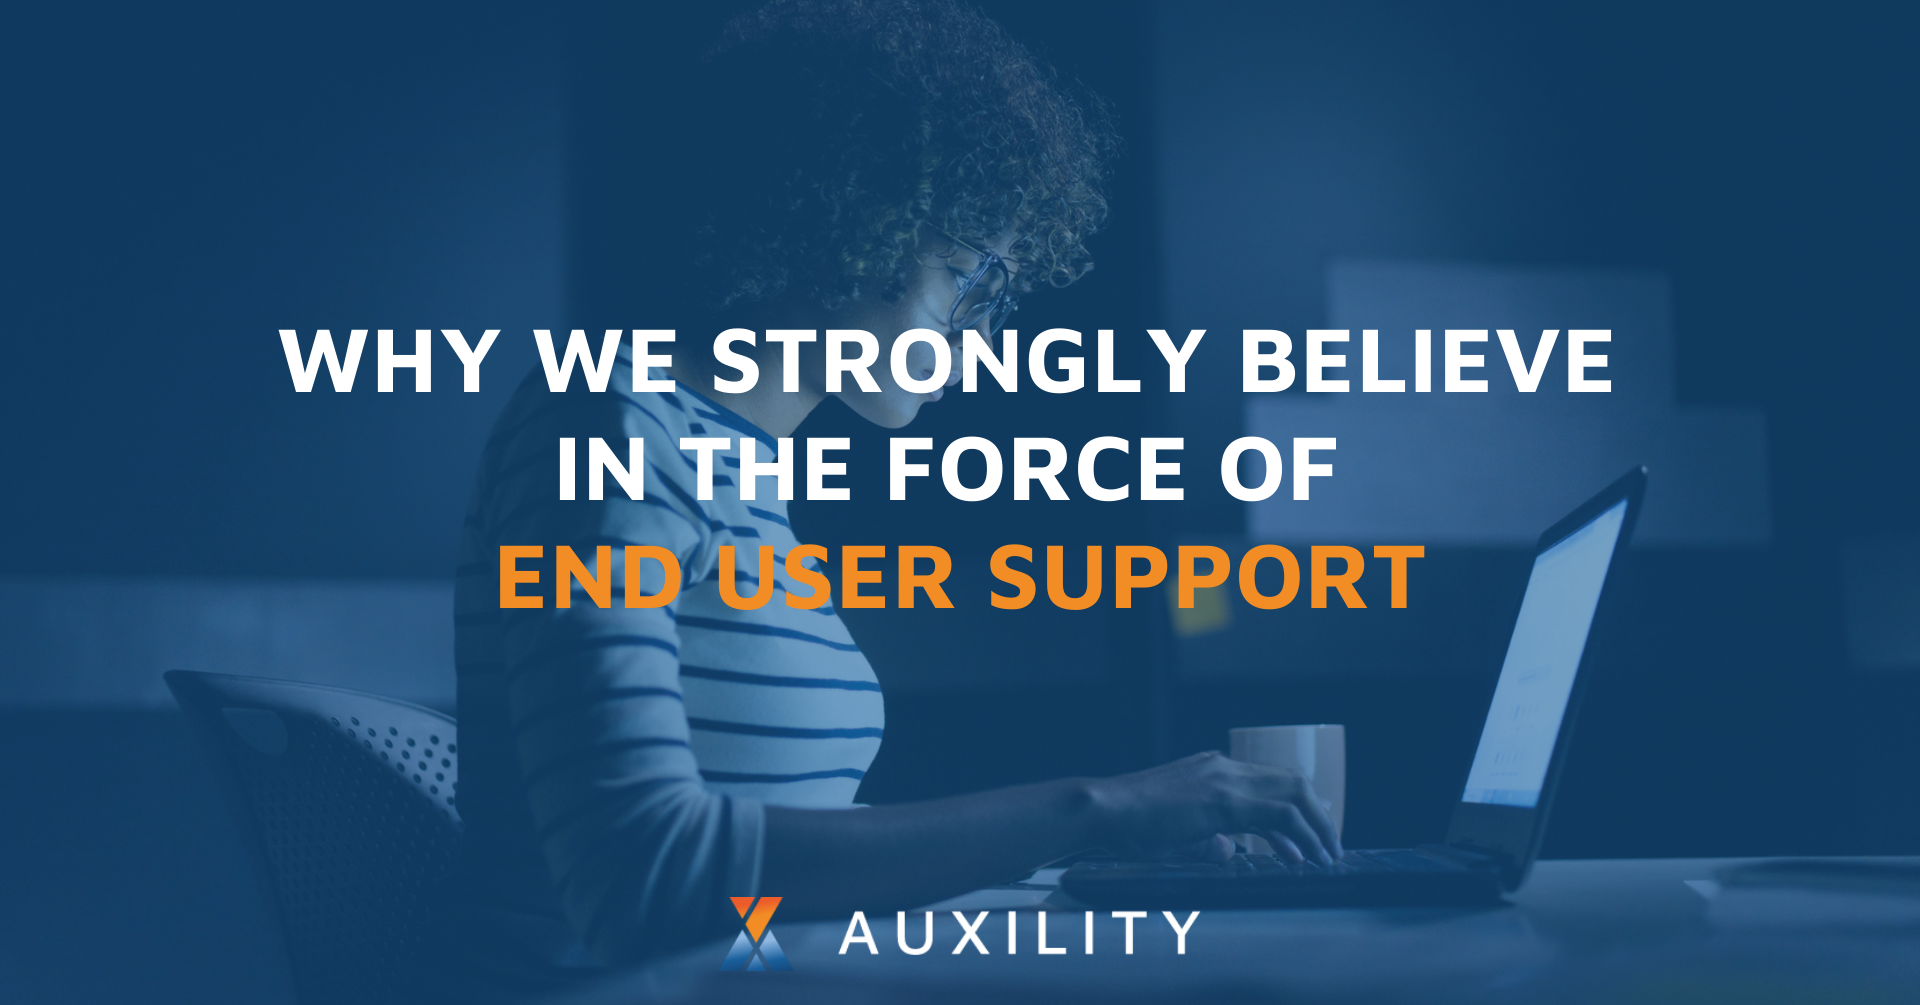 Why We Strongly Believe in the Force of End User Support Auxility